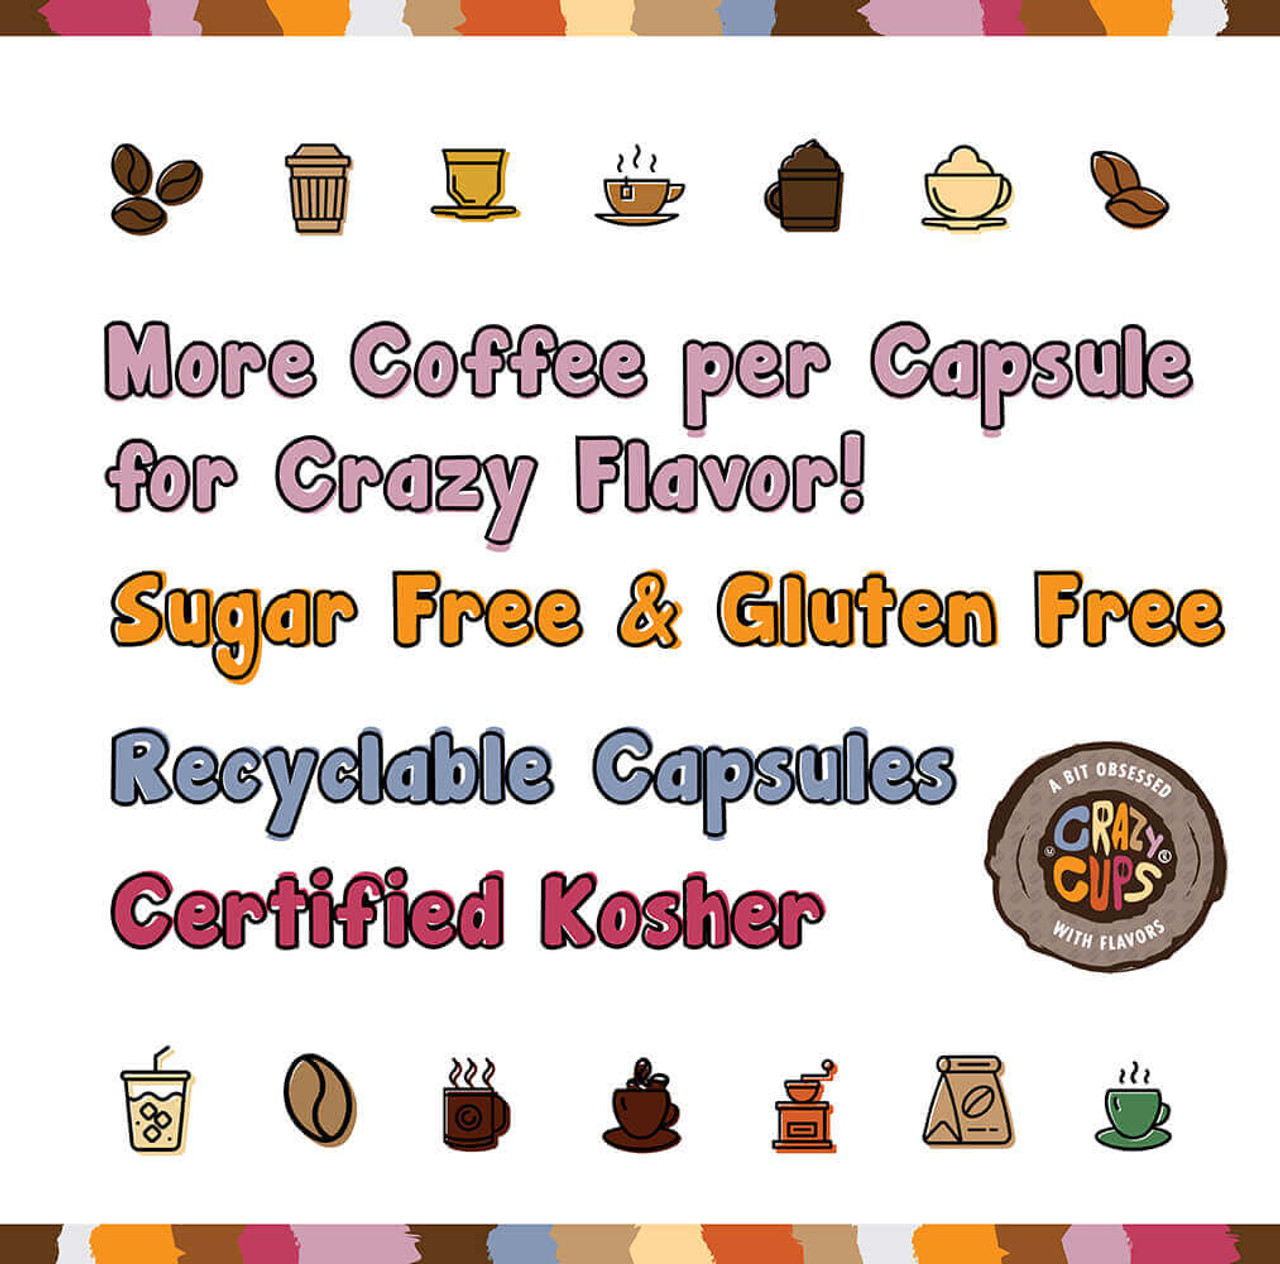 Santa's Sugar Cookie Flavored Coffee by Crazy Cups